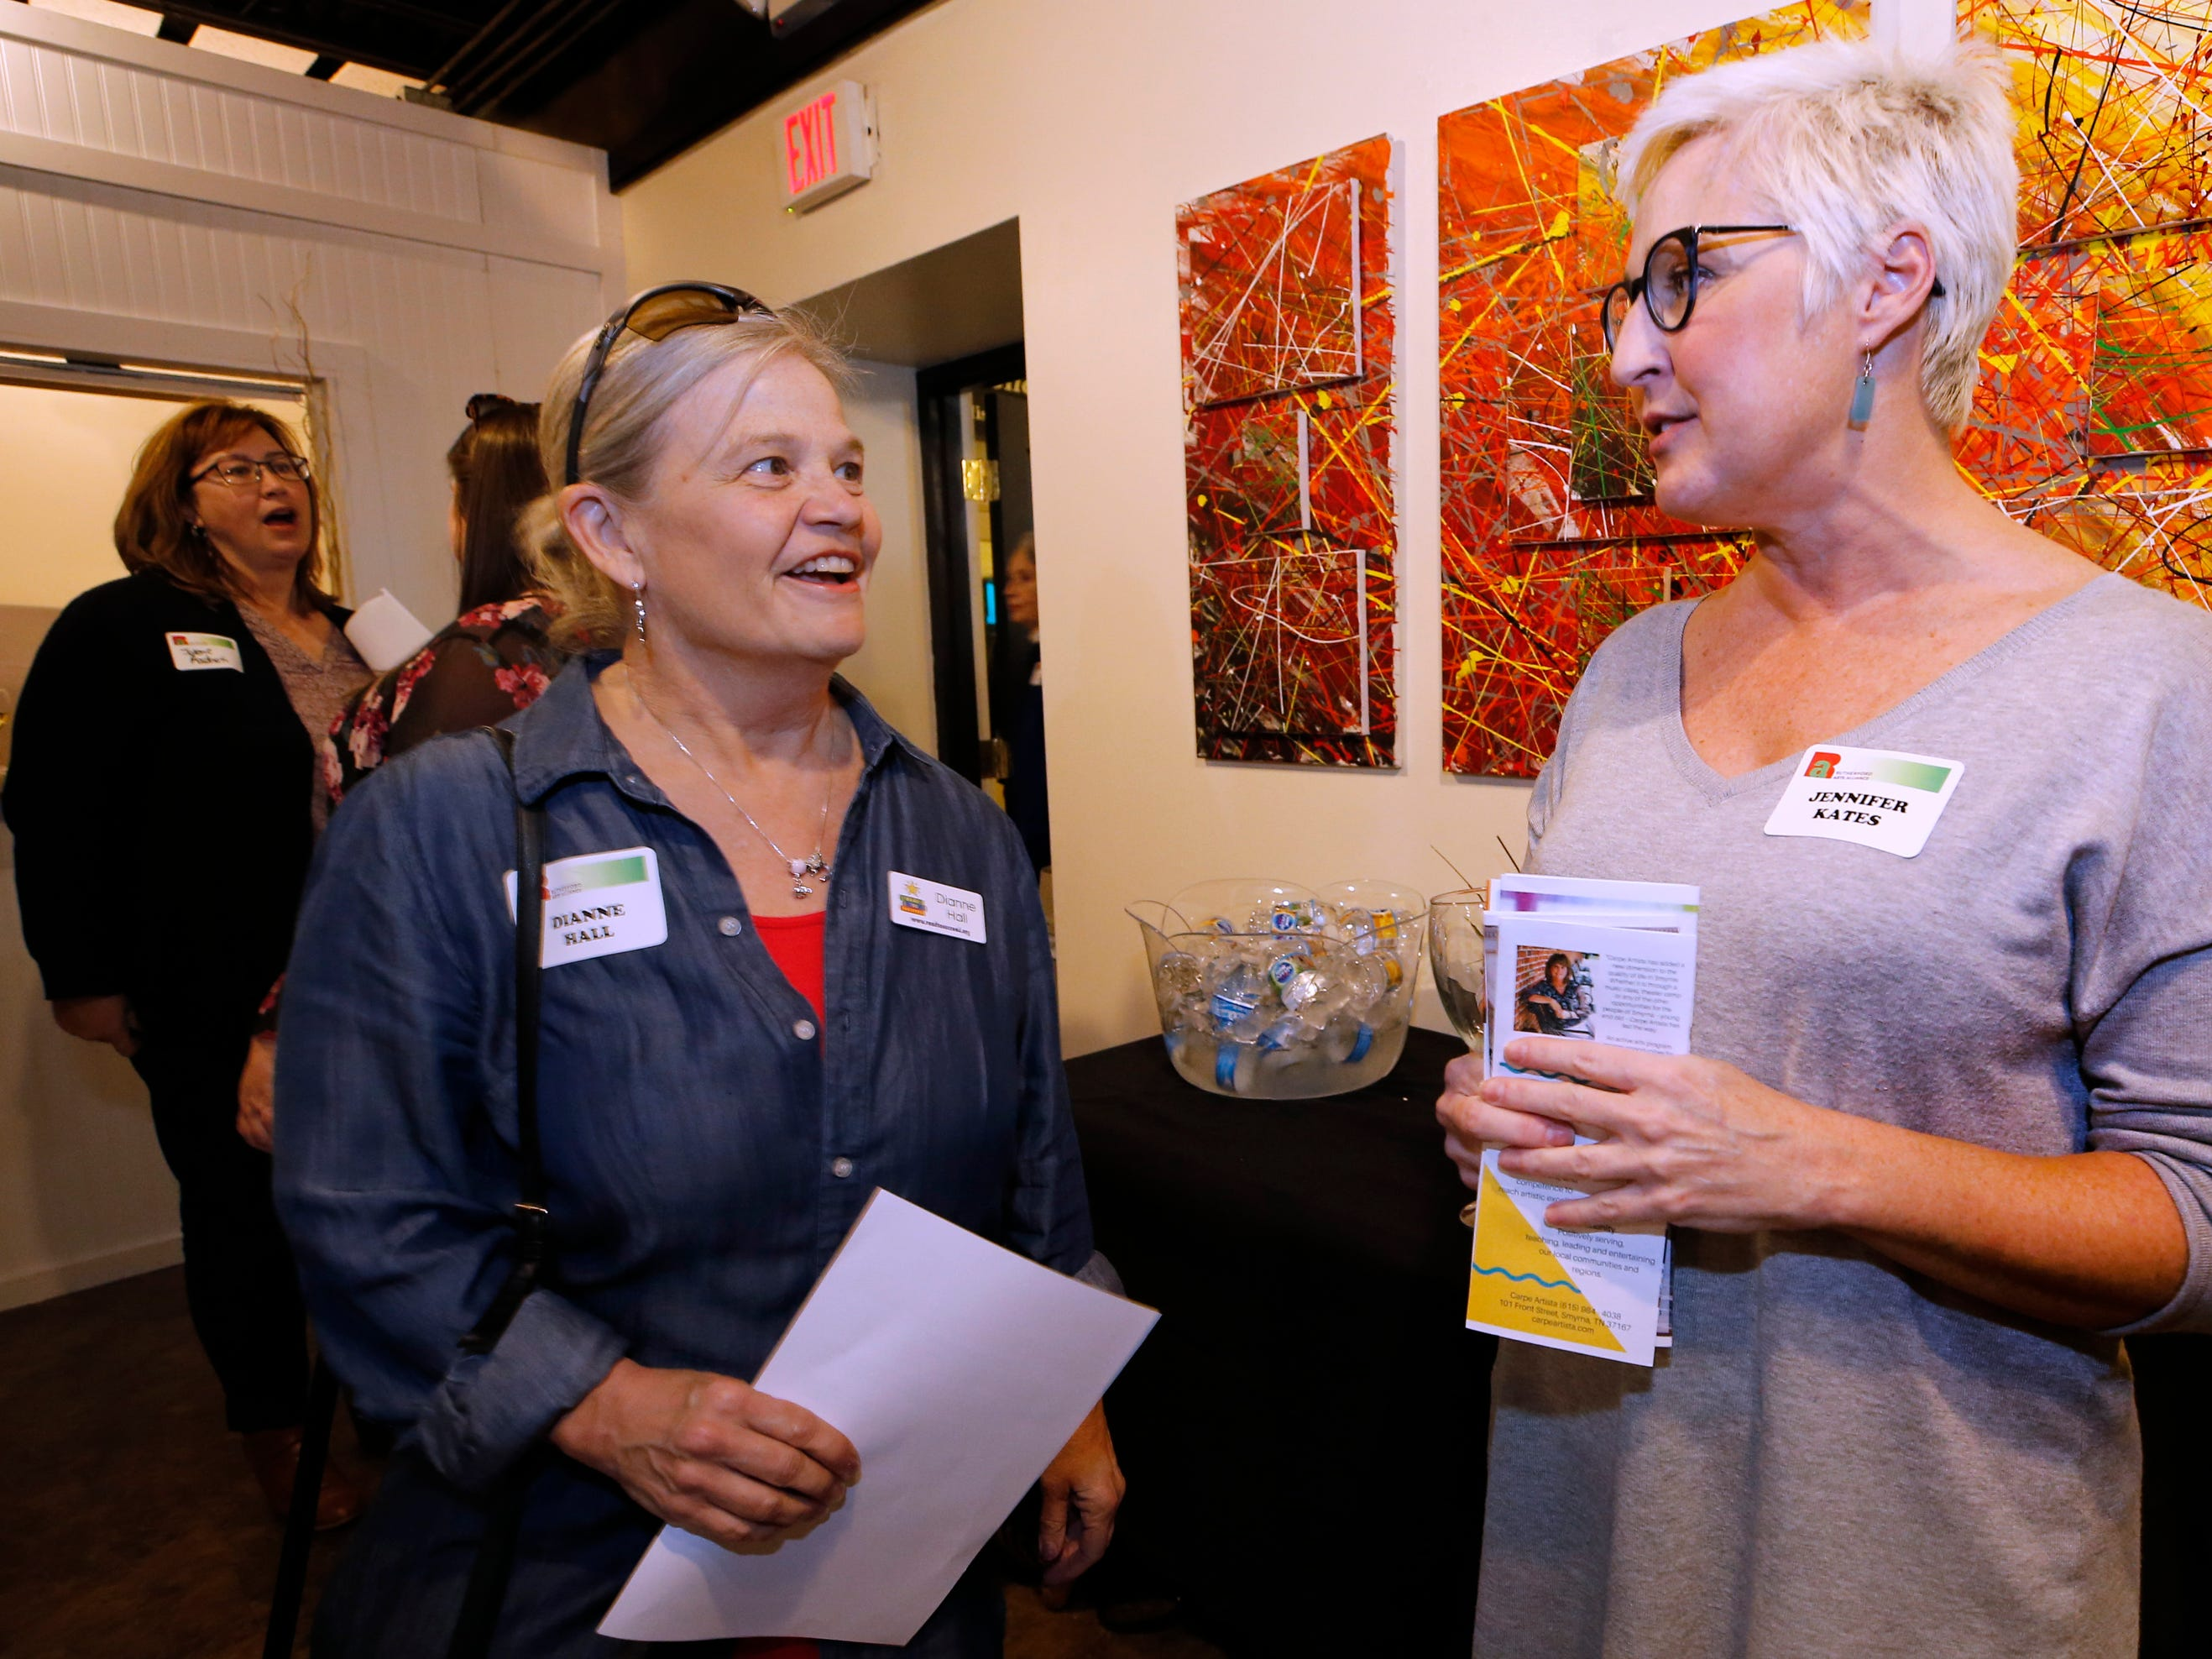 Dianne Hall, left and Jennifer Kates at an arts reception for Rutherford Arts Alliance held at the Center for the Arts on Wednesday Jan. 9, 2019.